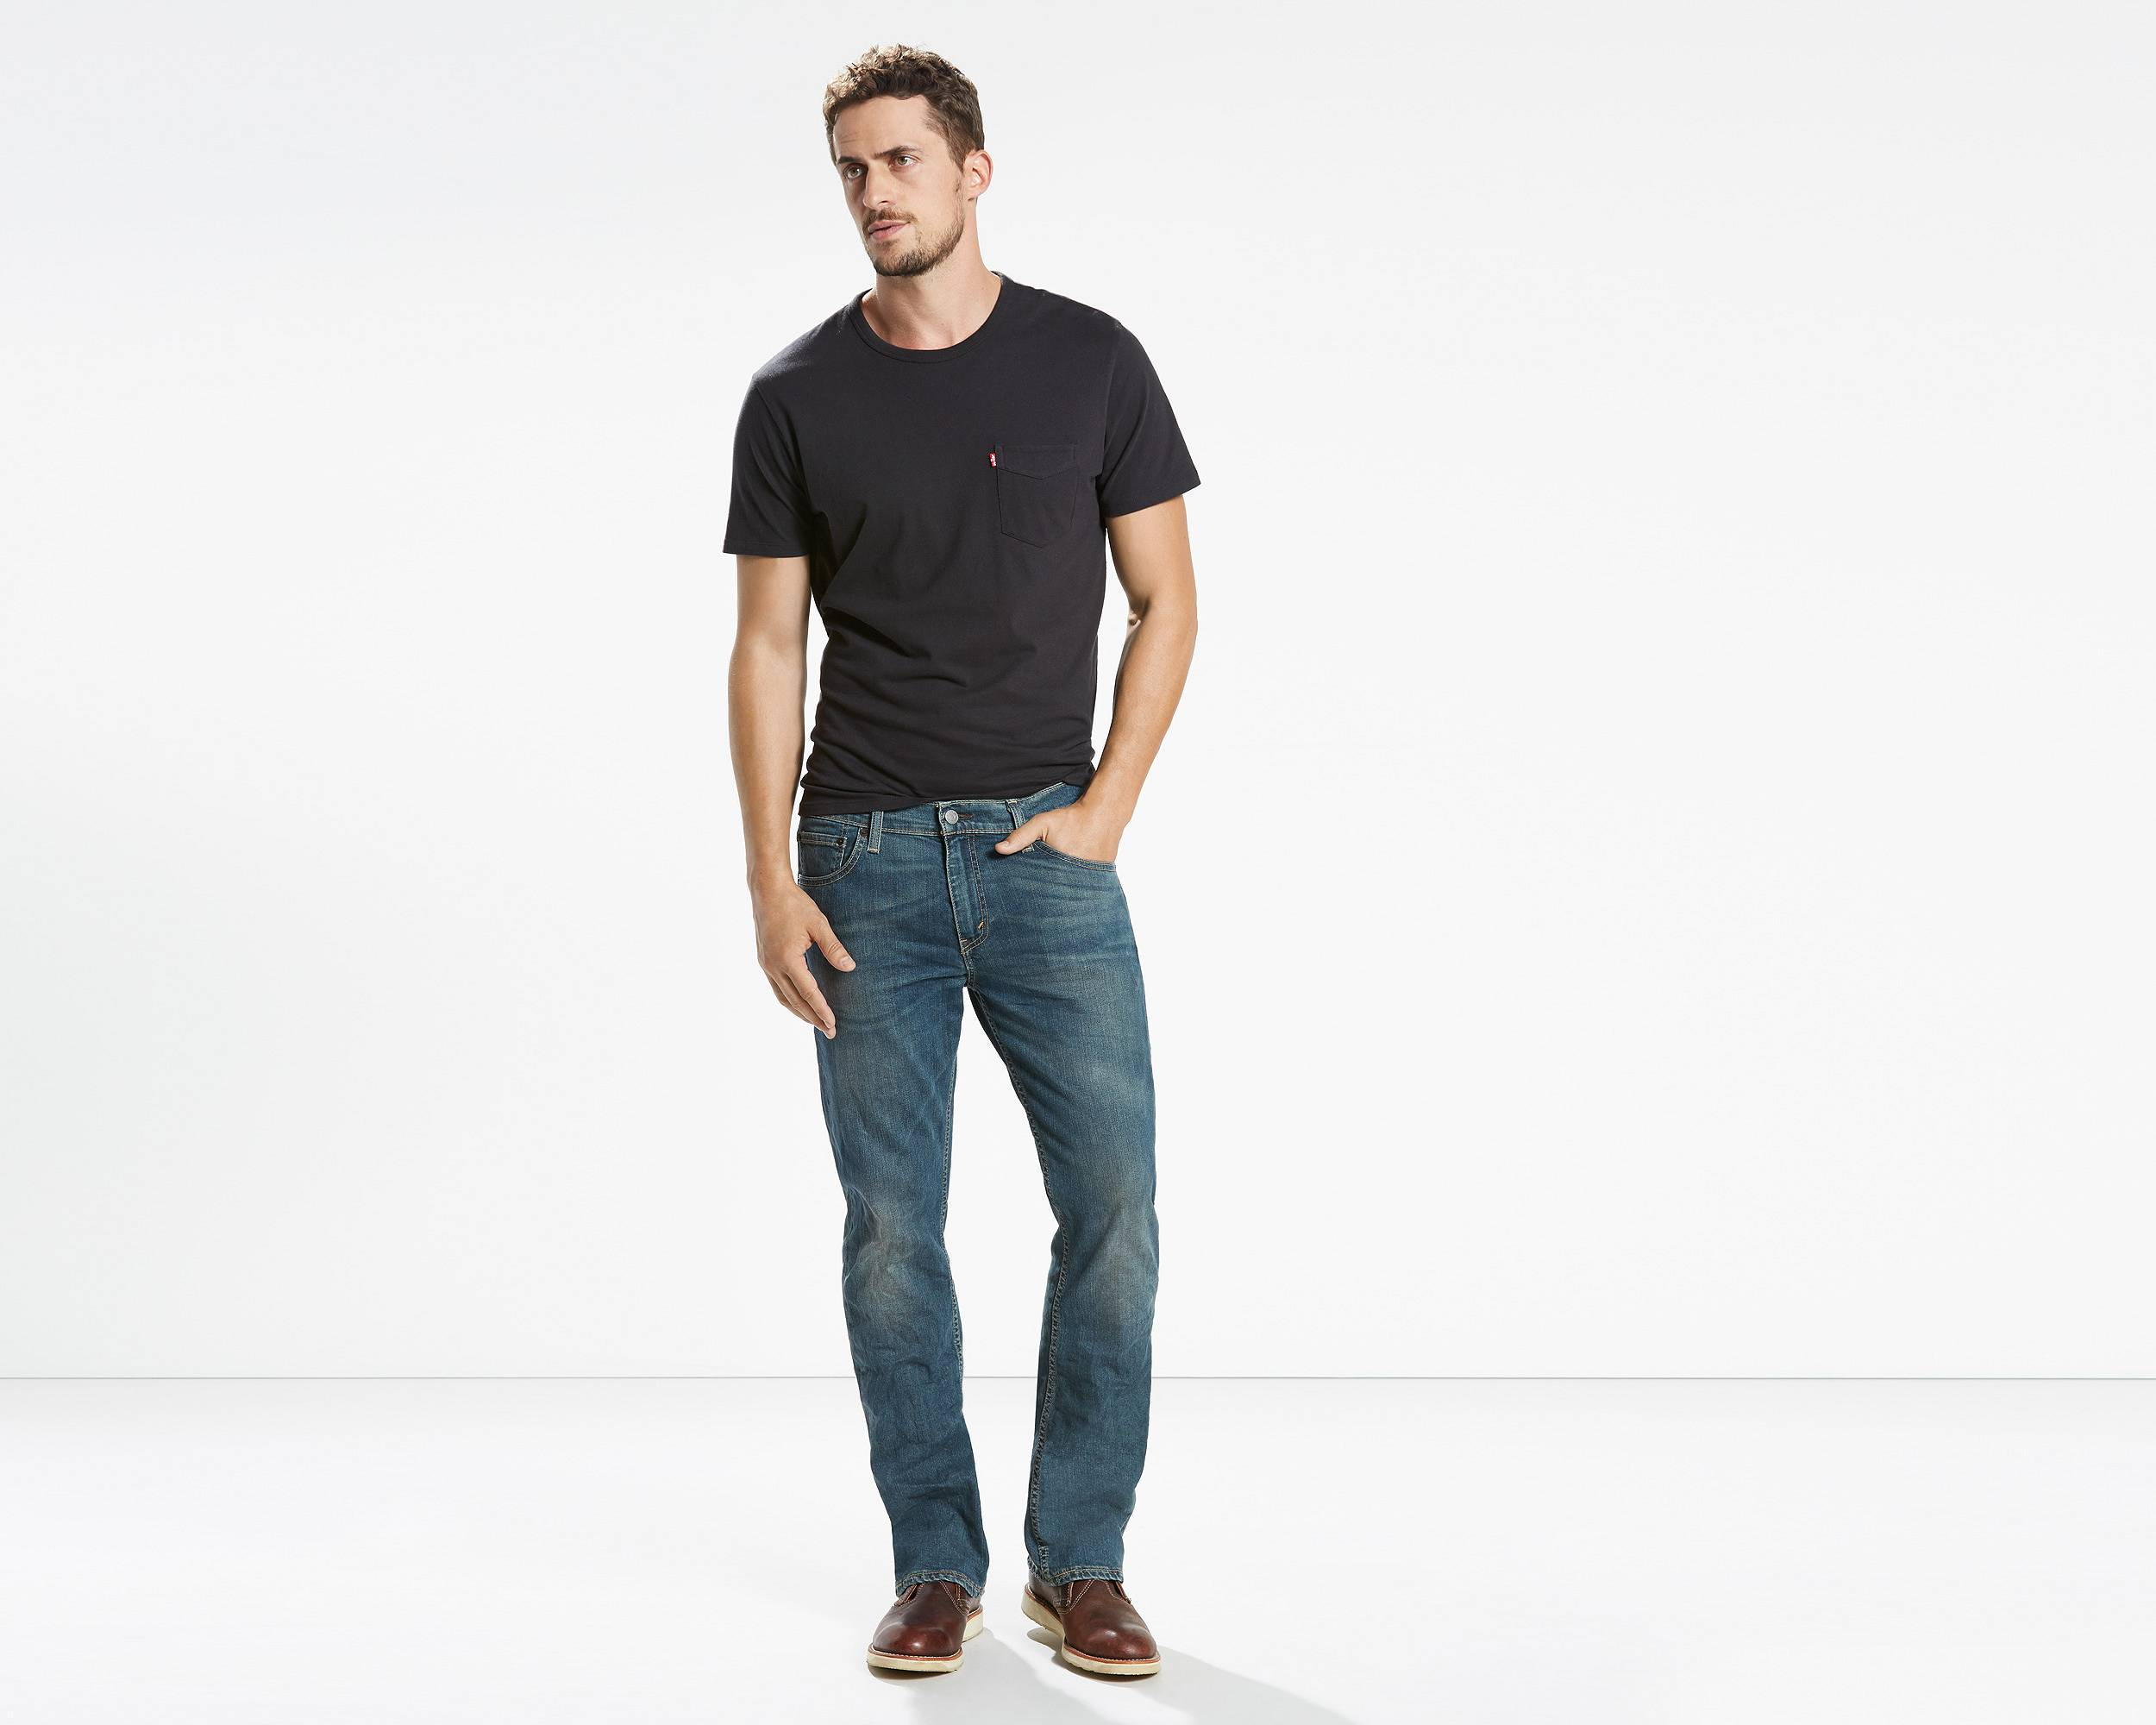 527™ Slim Boot Cut Stretch Jeans | Ficous |Levi&39s® United States (US)